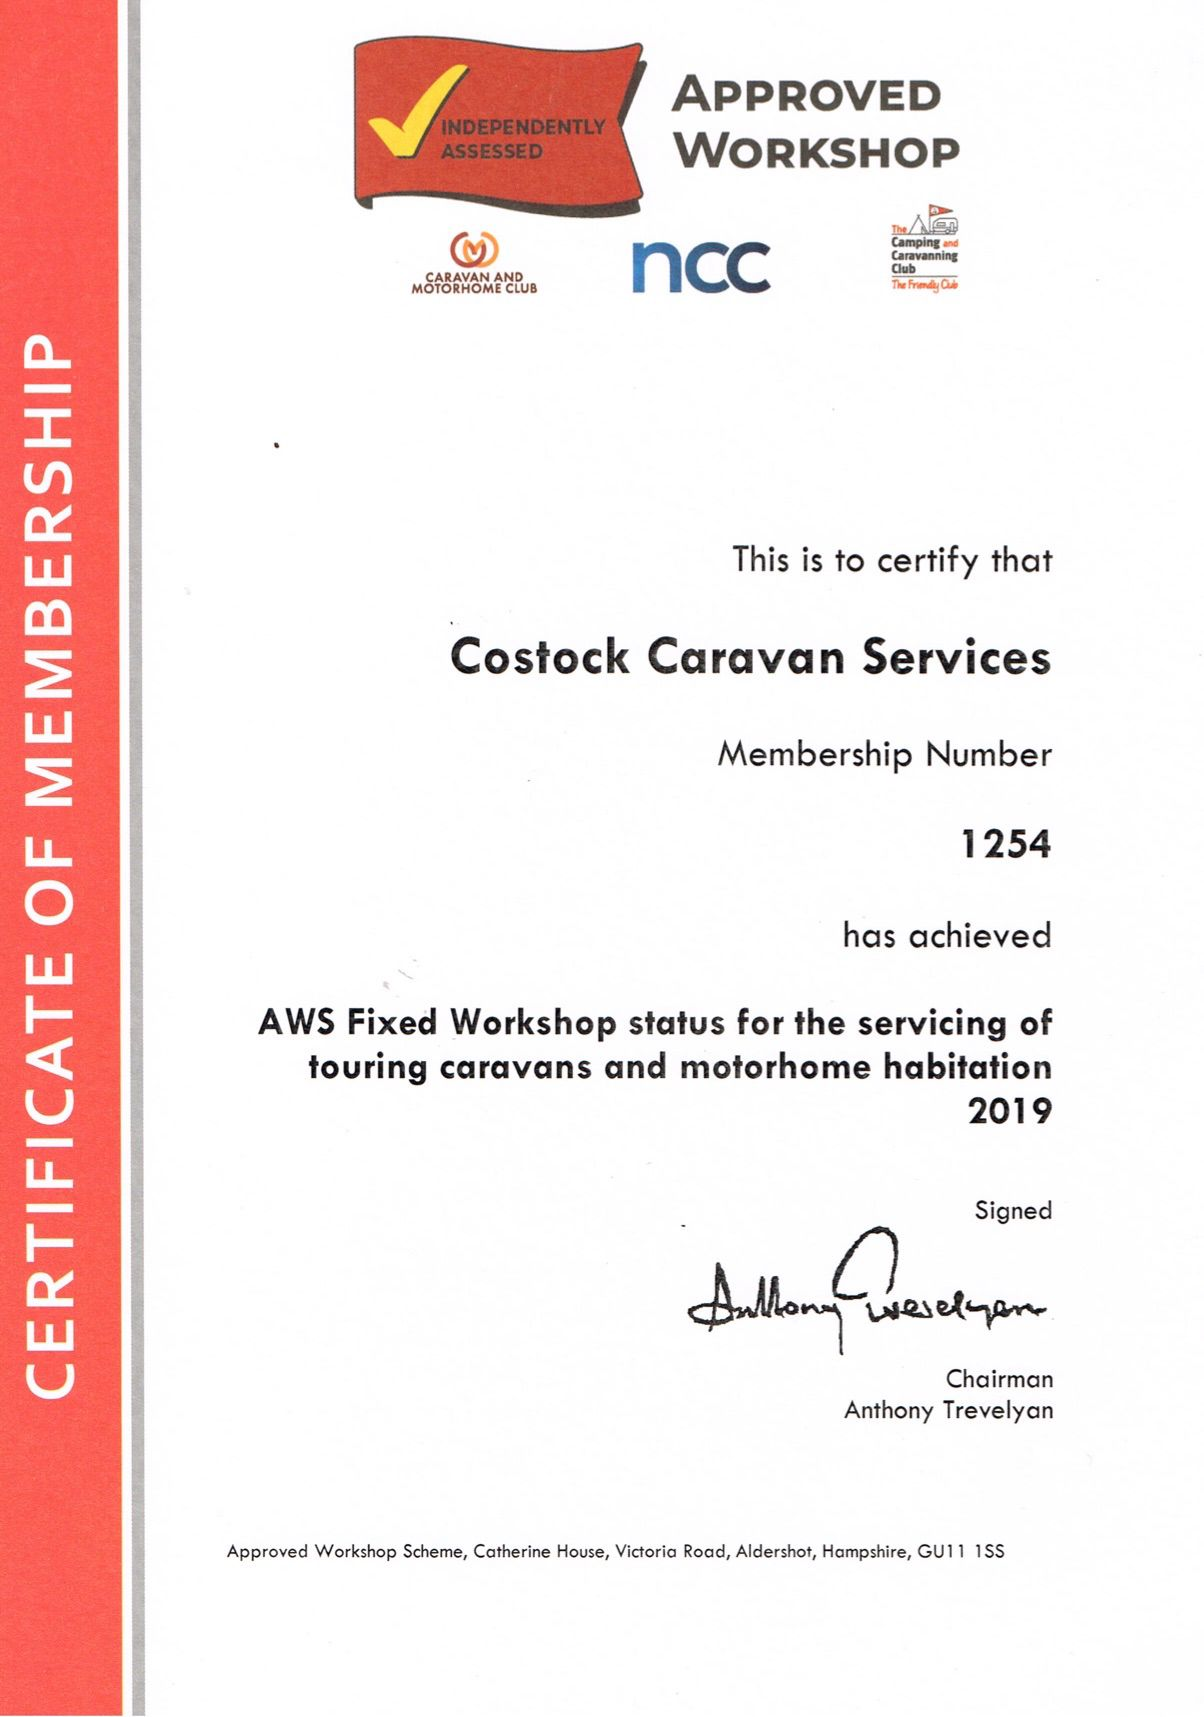 Approved Workshop Certificate